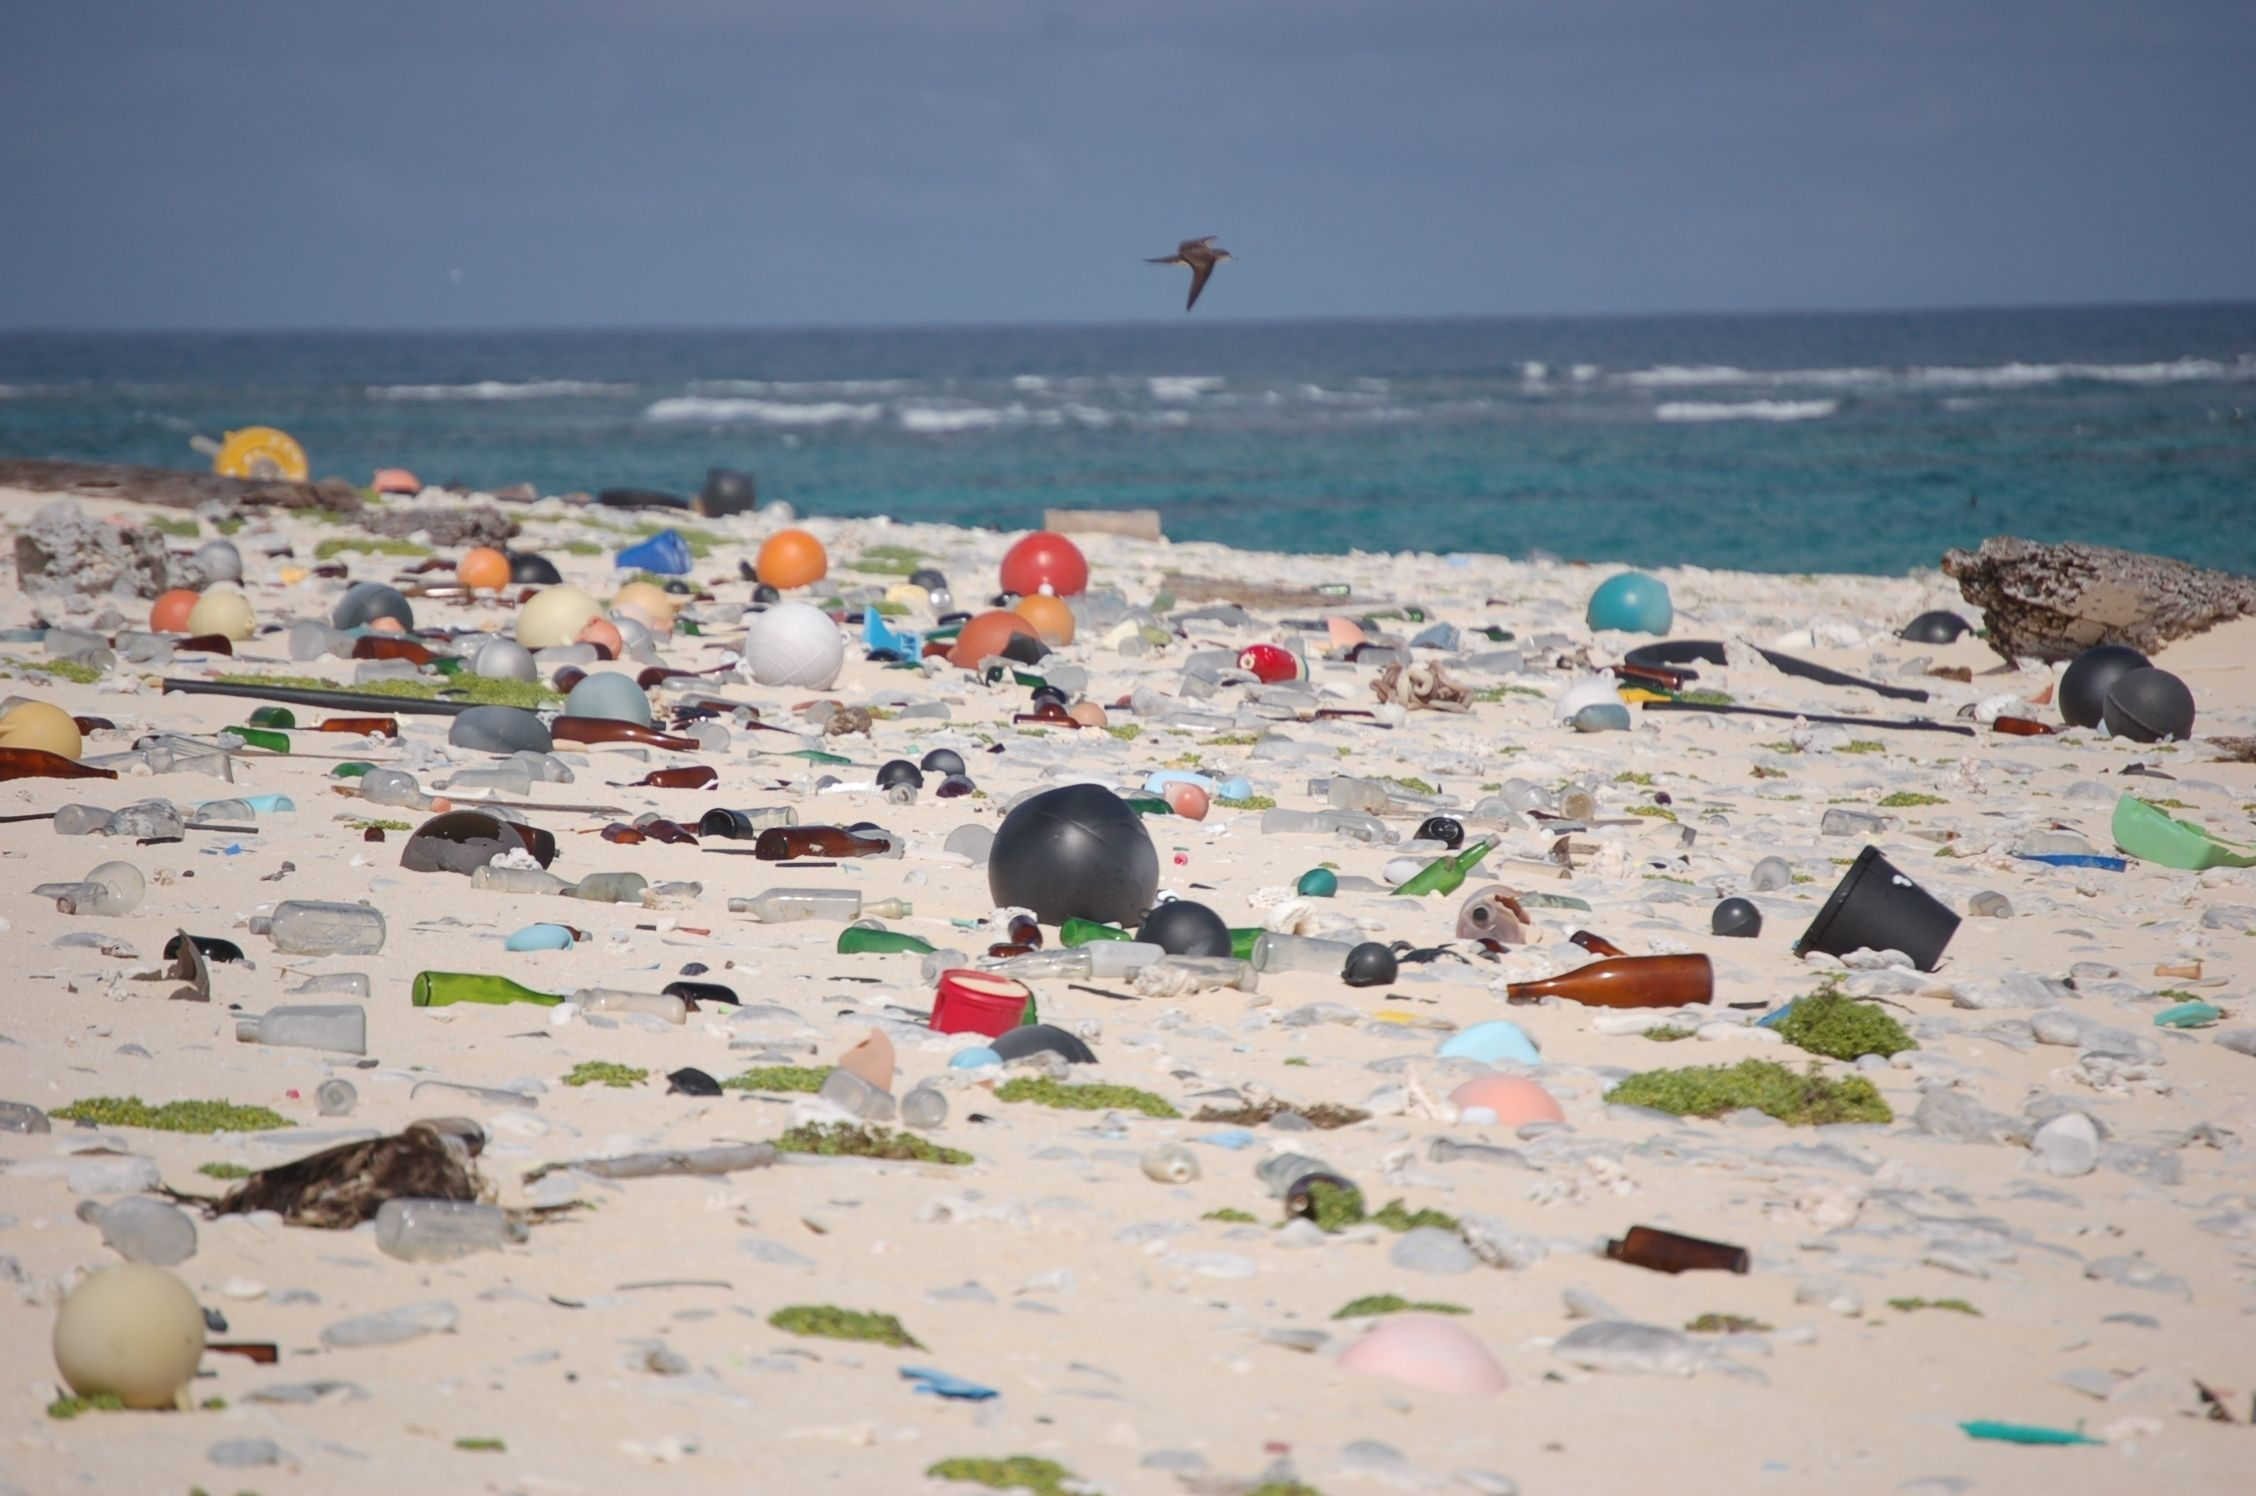 Beach_strewn_with_plastic_debris_(8080500982).jpg